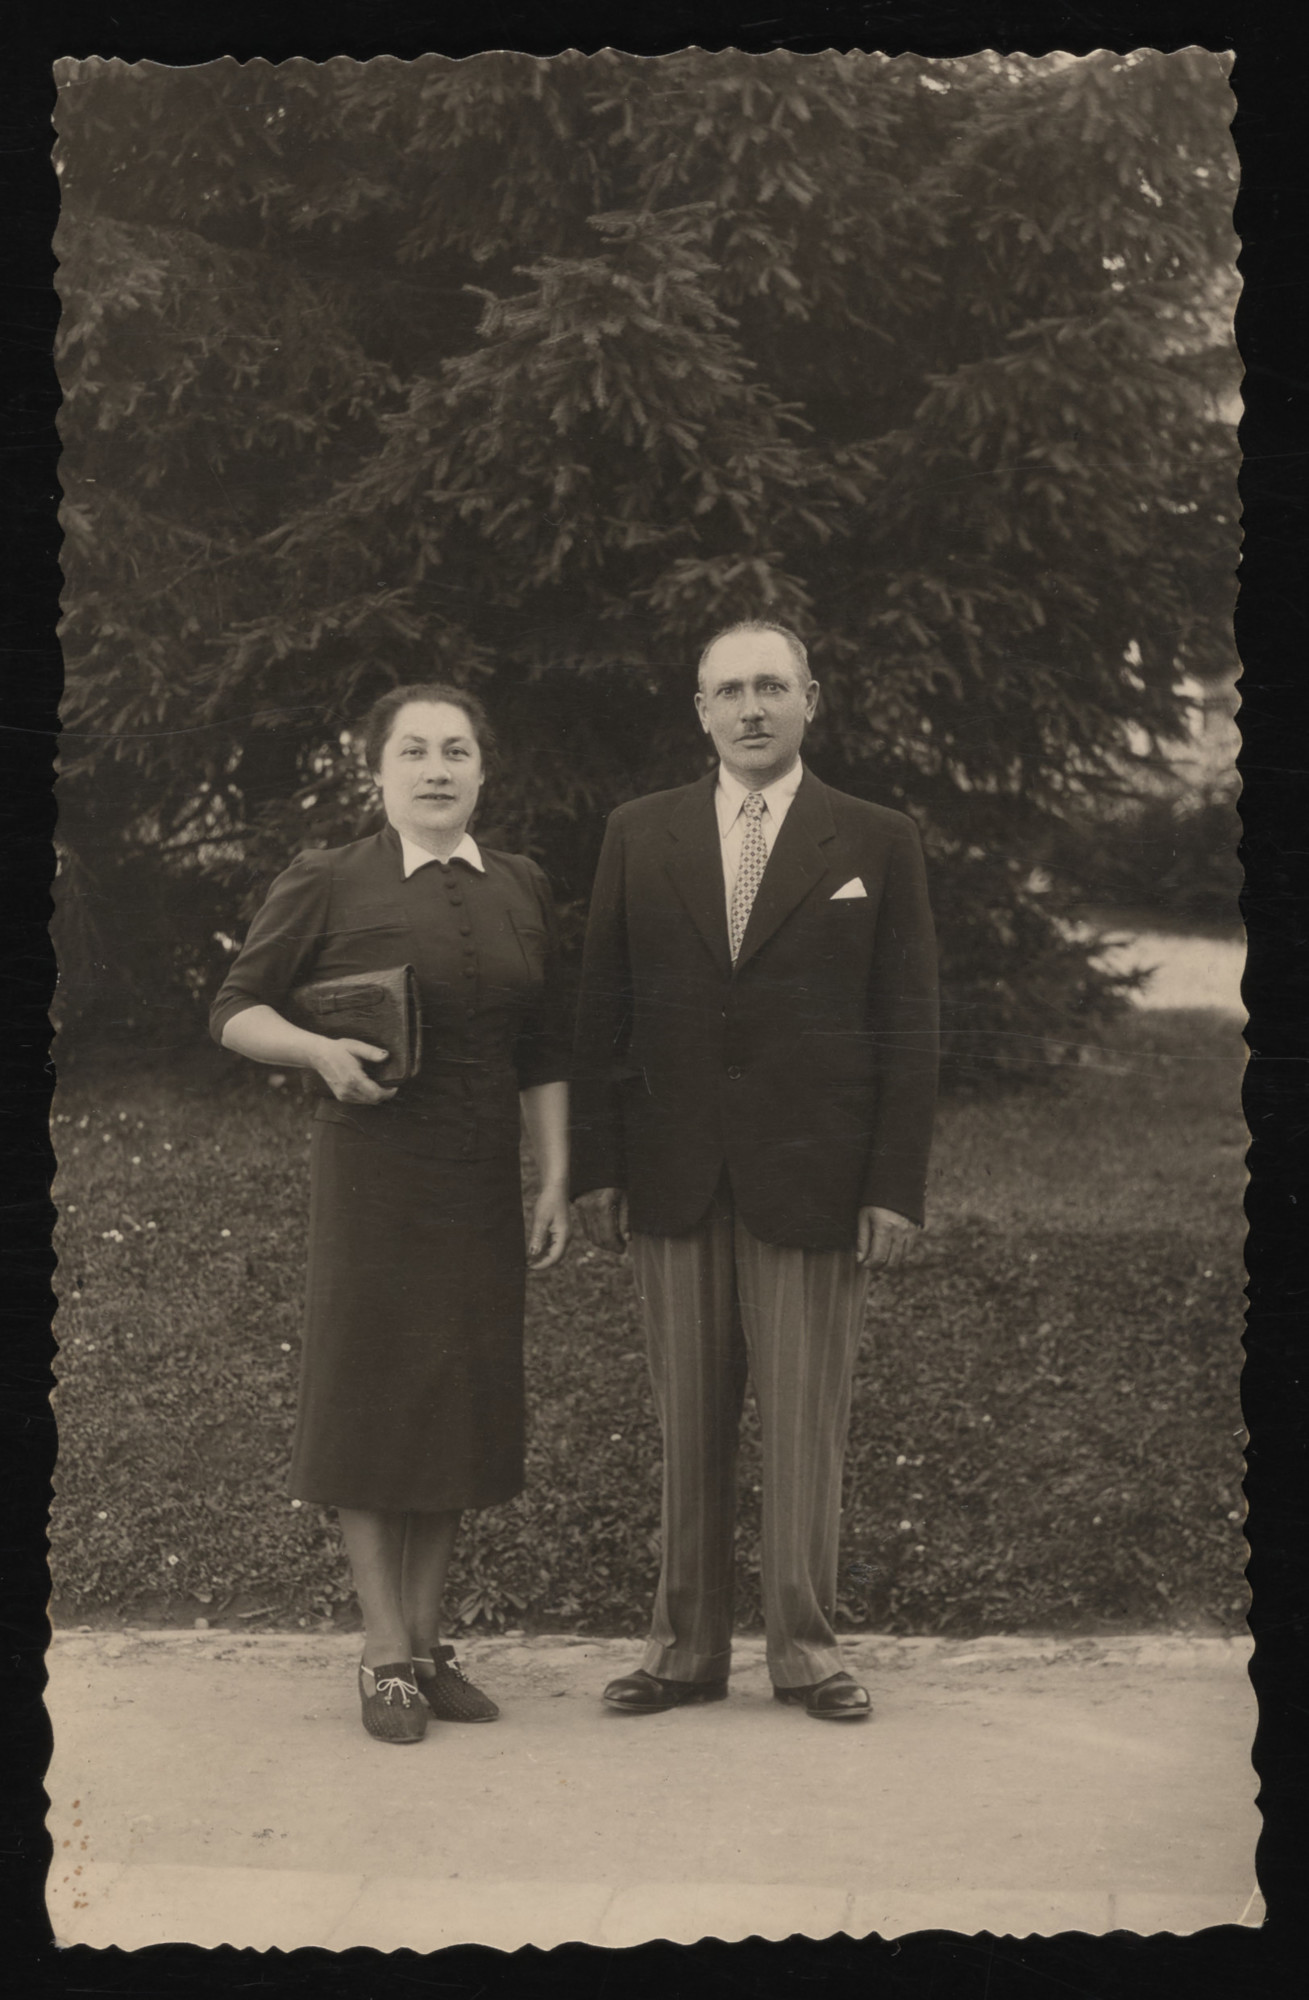 A Jewish couple poses outside at a spa in Krynica.  Pictured are Rozalia and Naftali Tabaczynski.